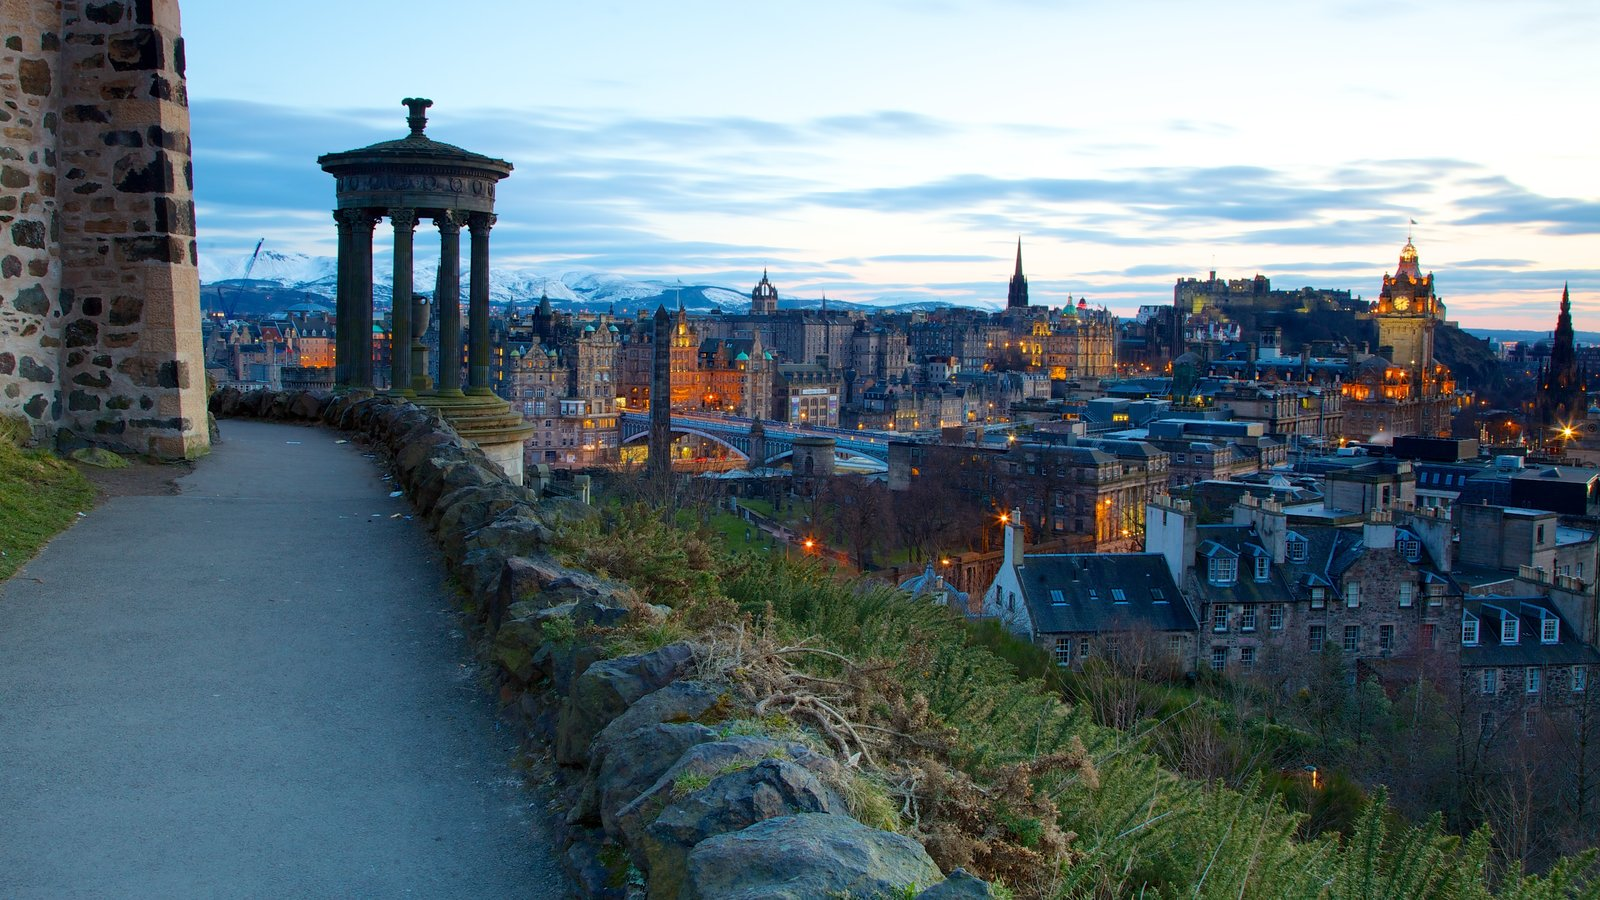 Calton Hill featuring a city and a monument